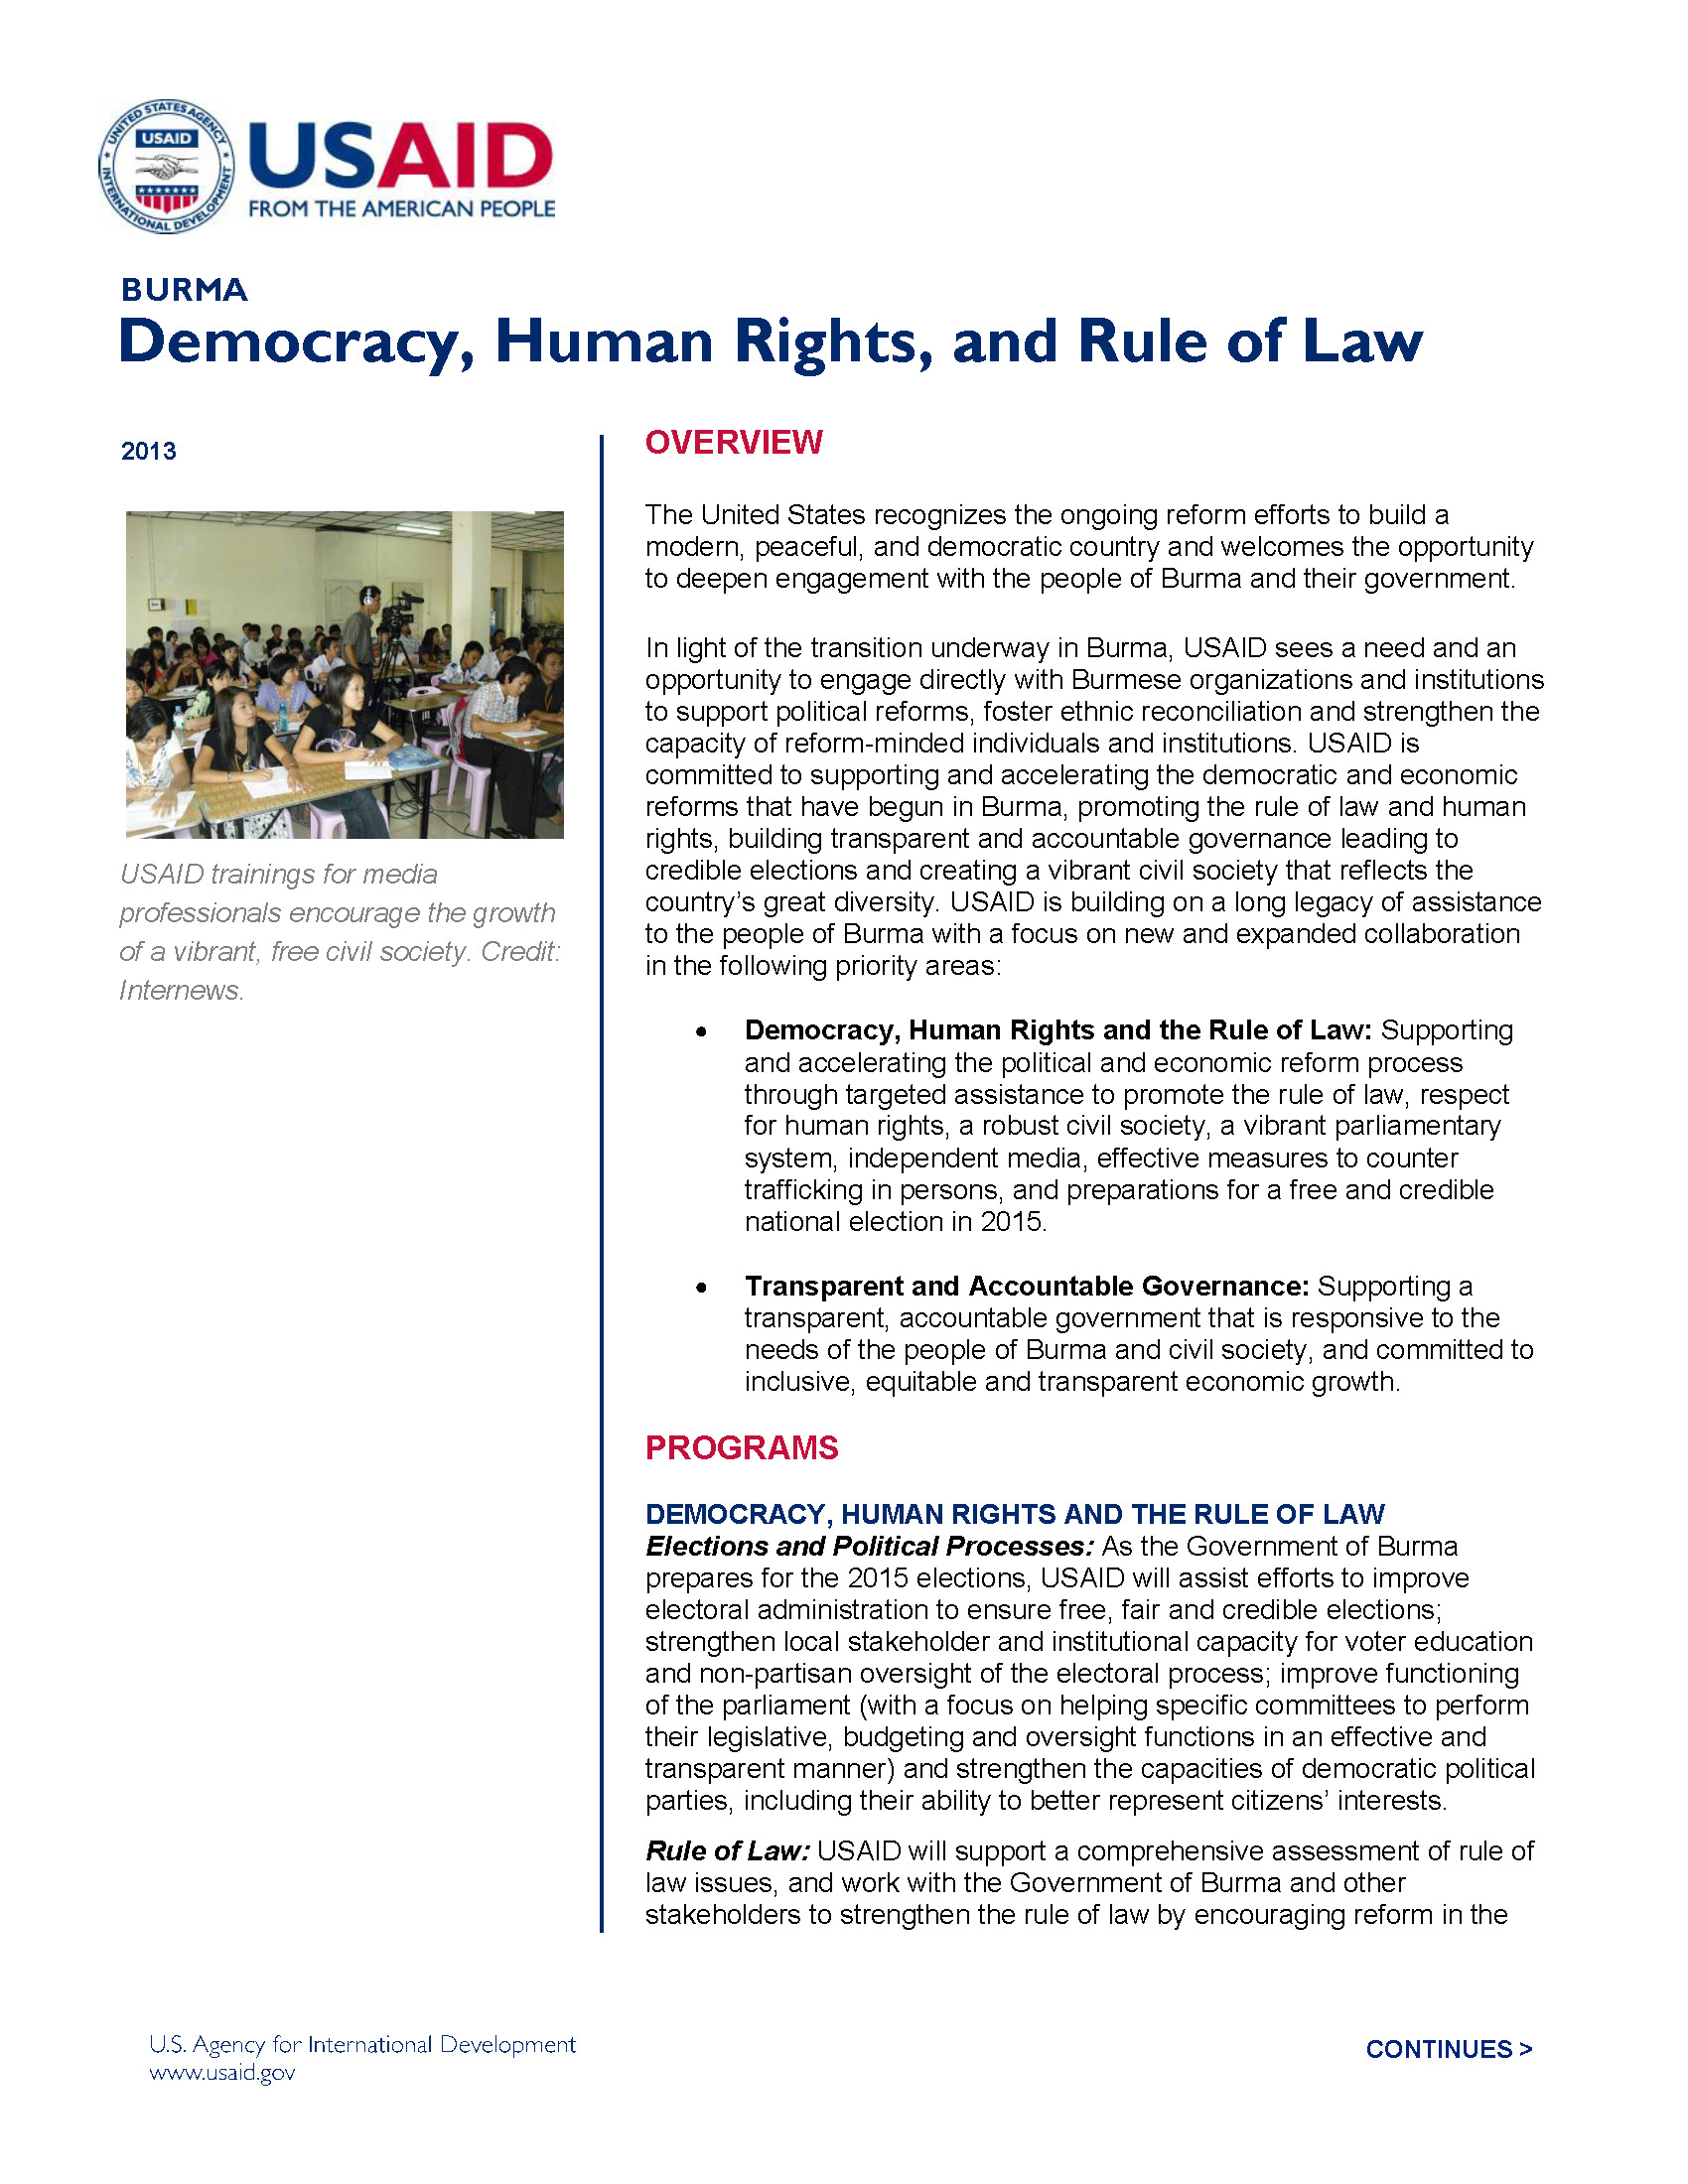 Burma: Democracy, Human Rights, and Rule of Law Fact Sheet